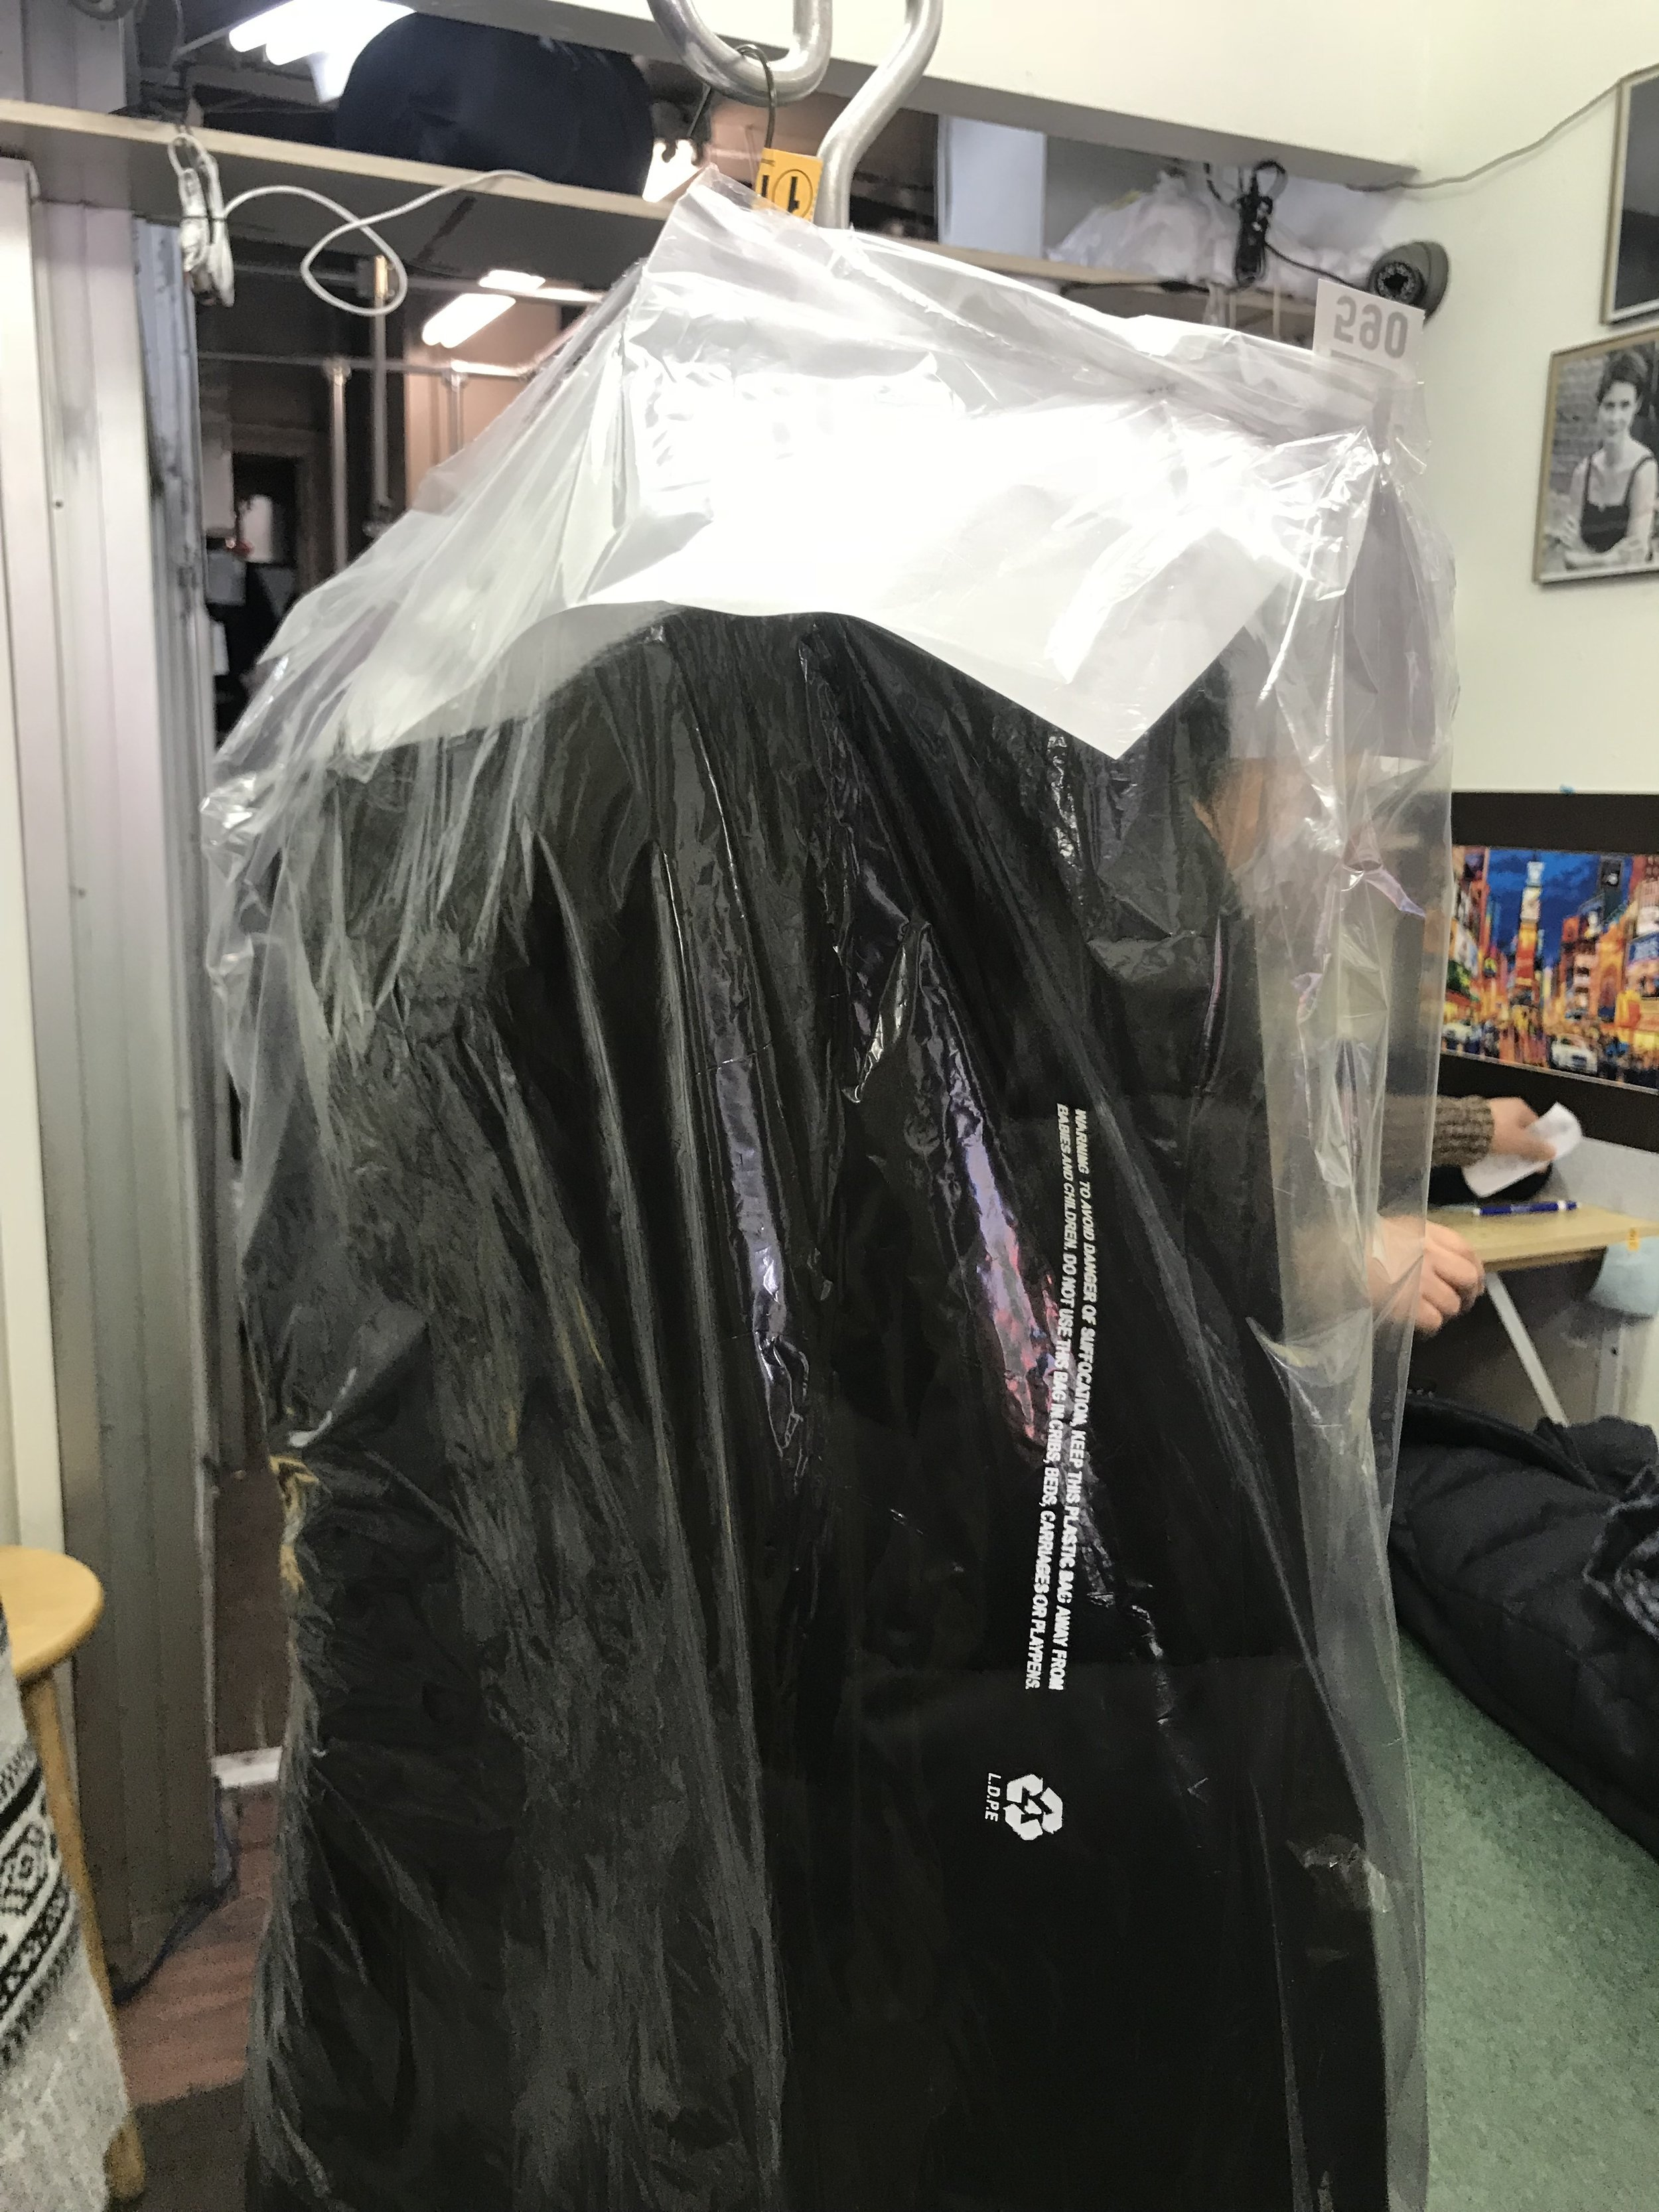 Coat at the Dry Cleaners.jpg